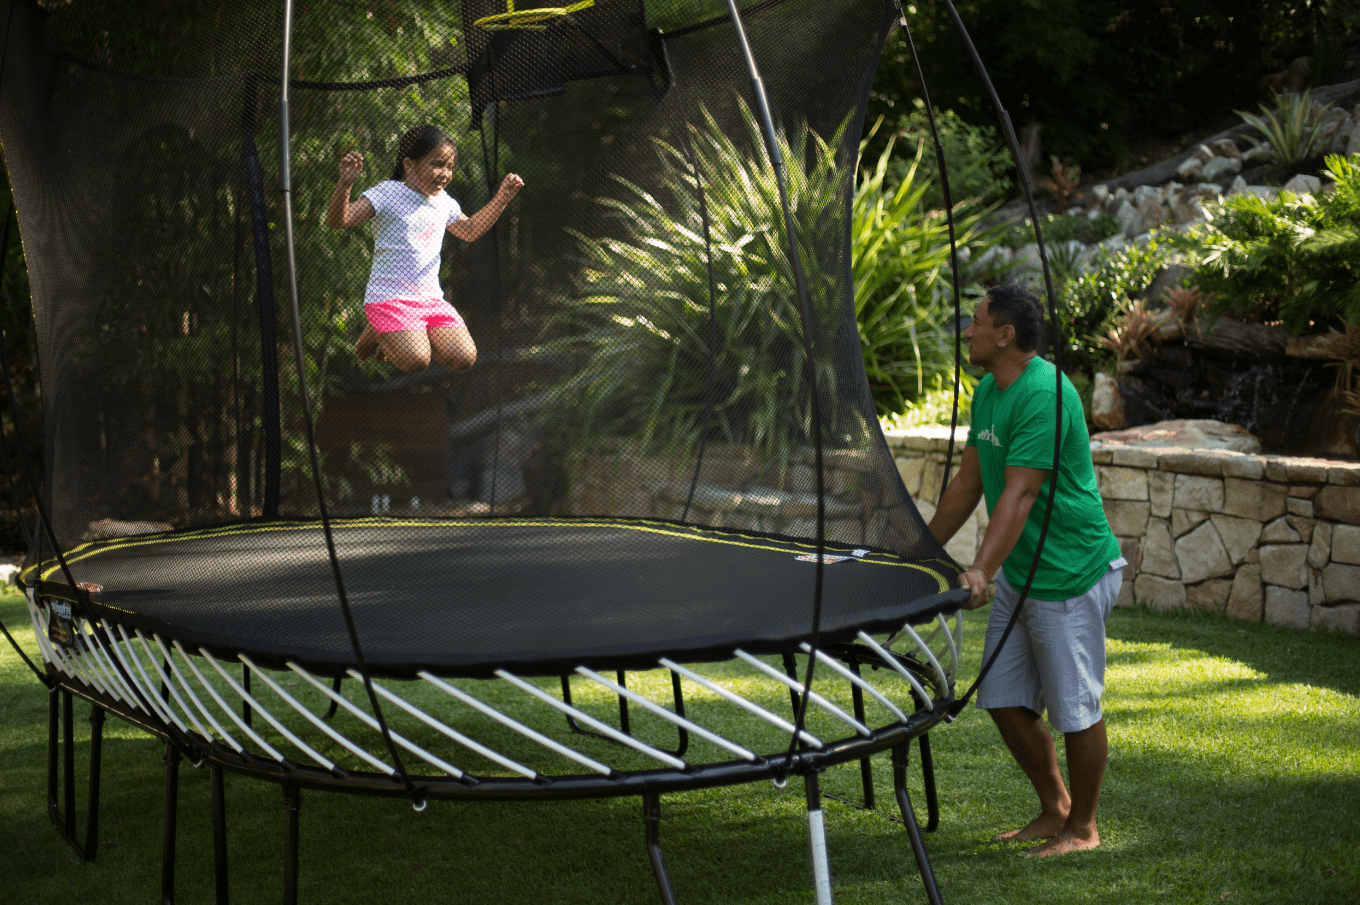 O92 Large Oval Trampoline Outdoor Trampolines Amp Play